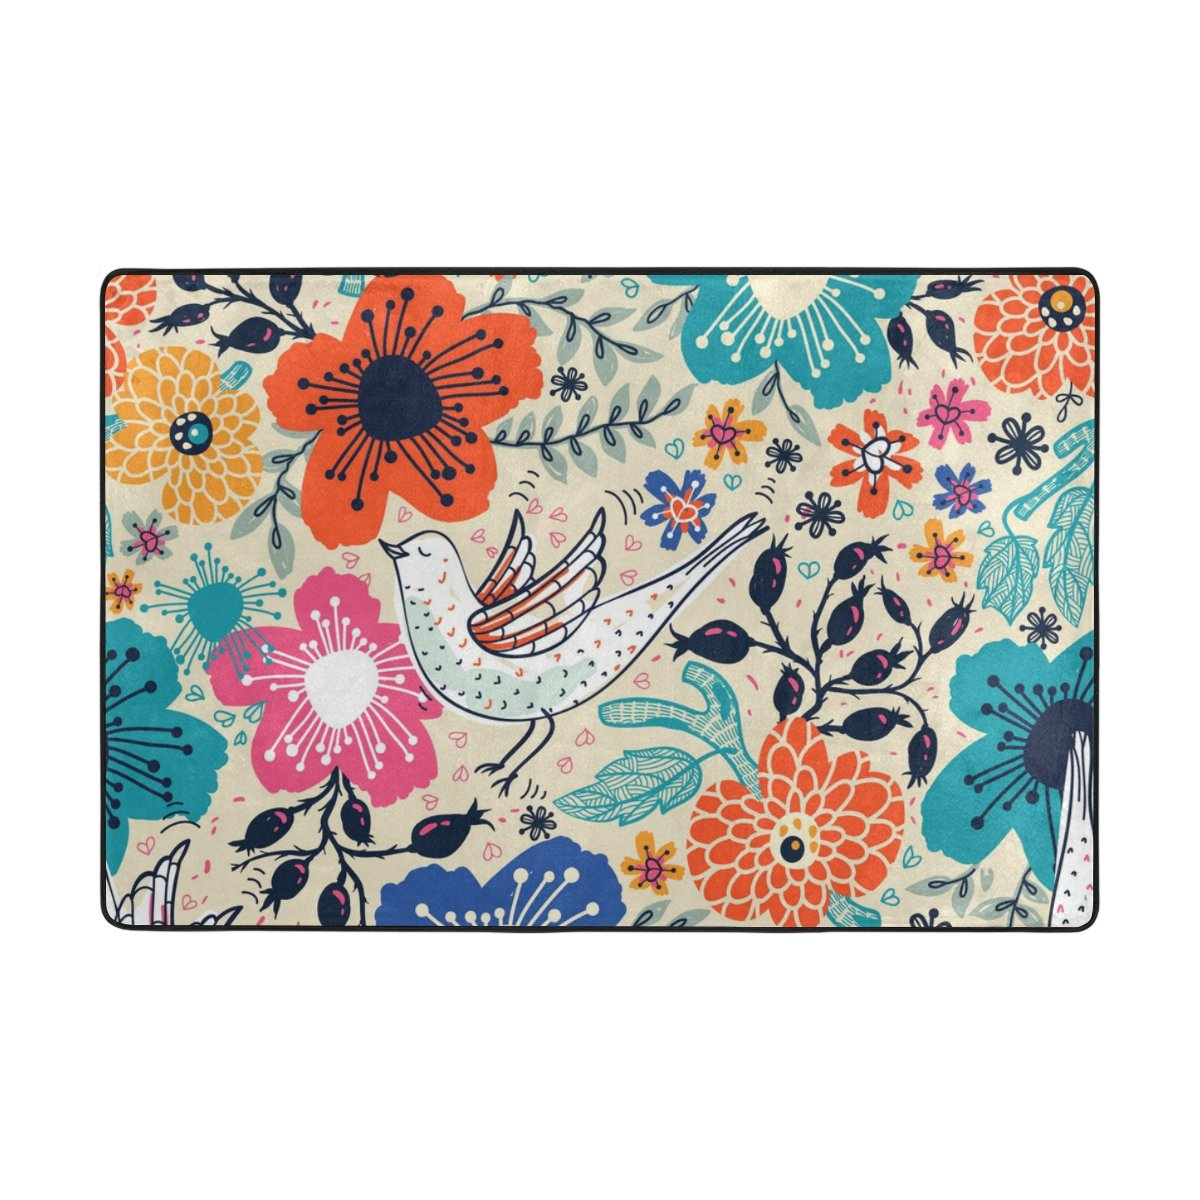 My Daily Cartoon Bird and Flower Floral Vintage Area Rug 4 x 6 Feet, Living Room Bedroom Kitchen Decorative Unique Lightweight Printed Rugs Carpet